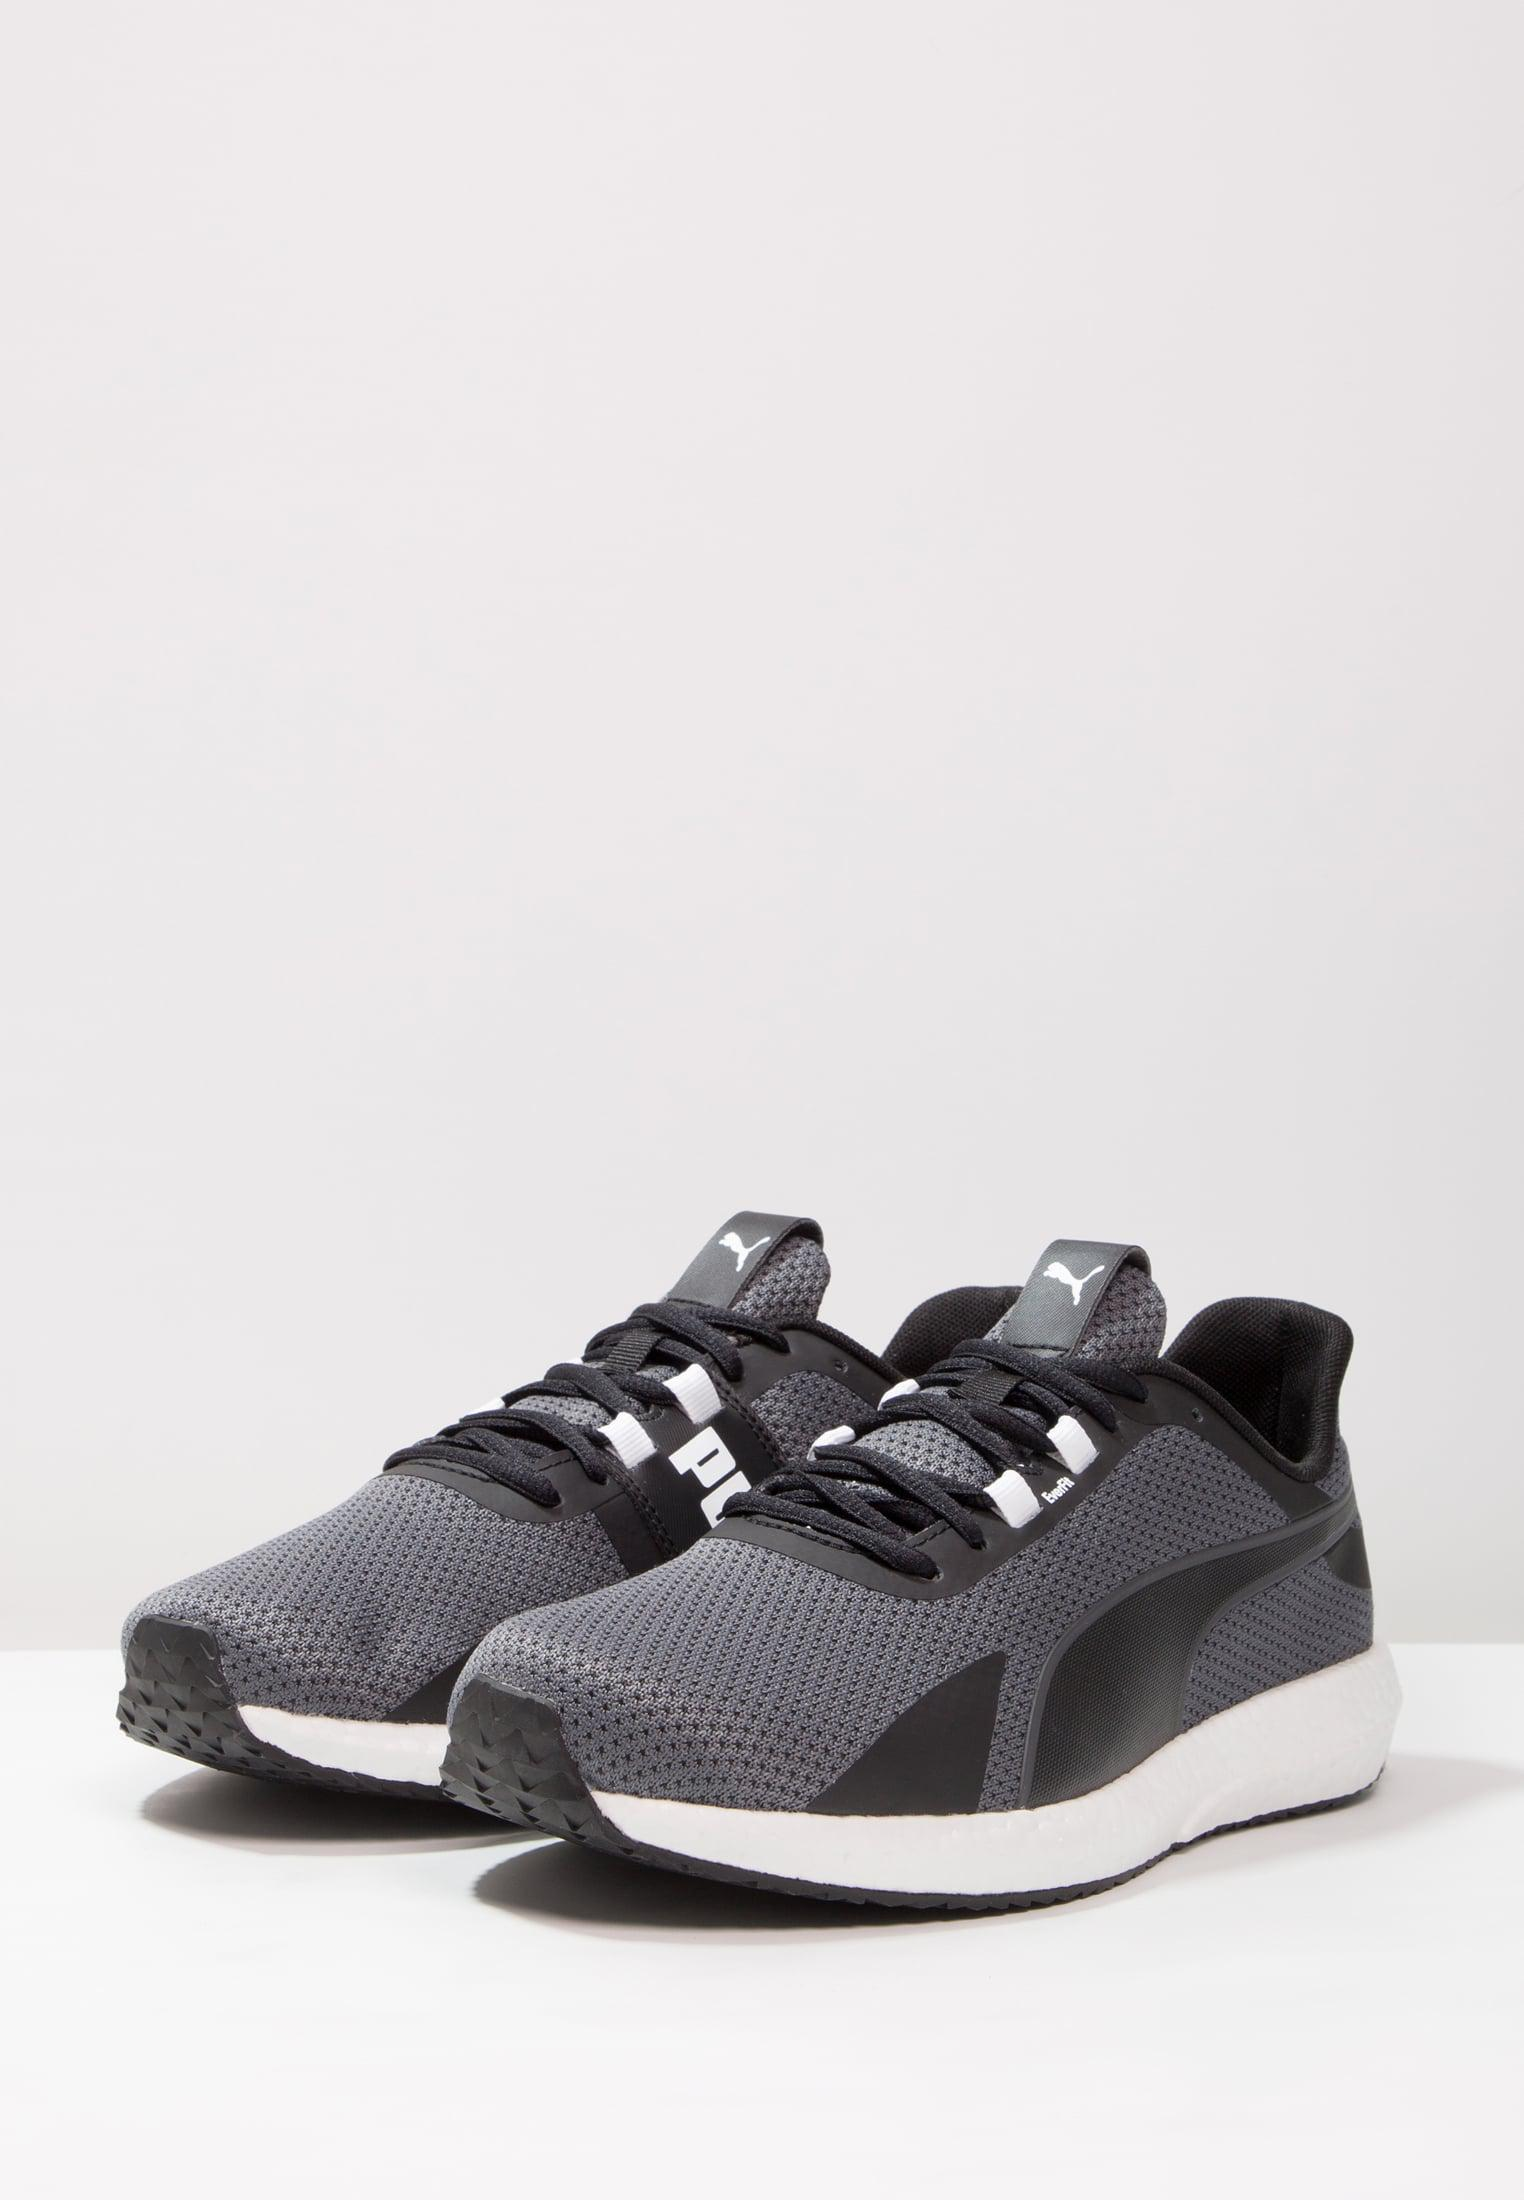 Lyst - Puma Mega Nrgy Turbo Neutral Running Shoes in Gray for Men 34aaaa209